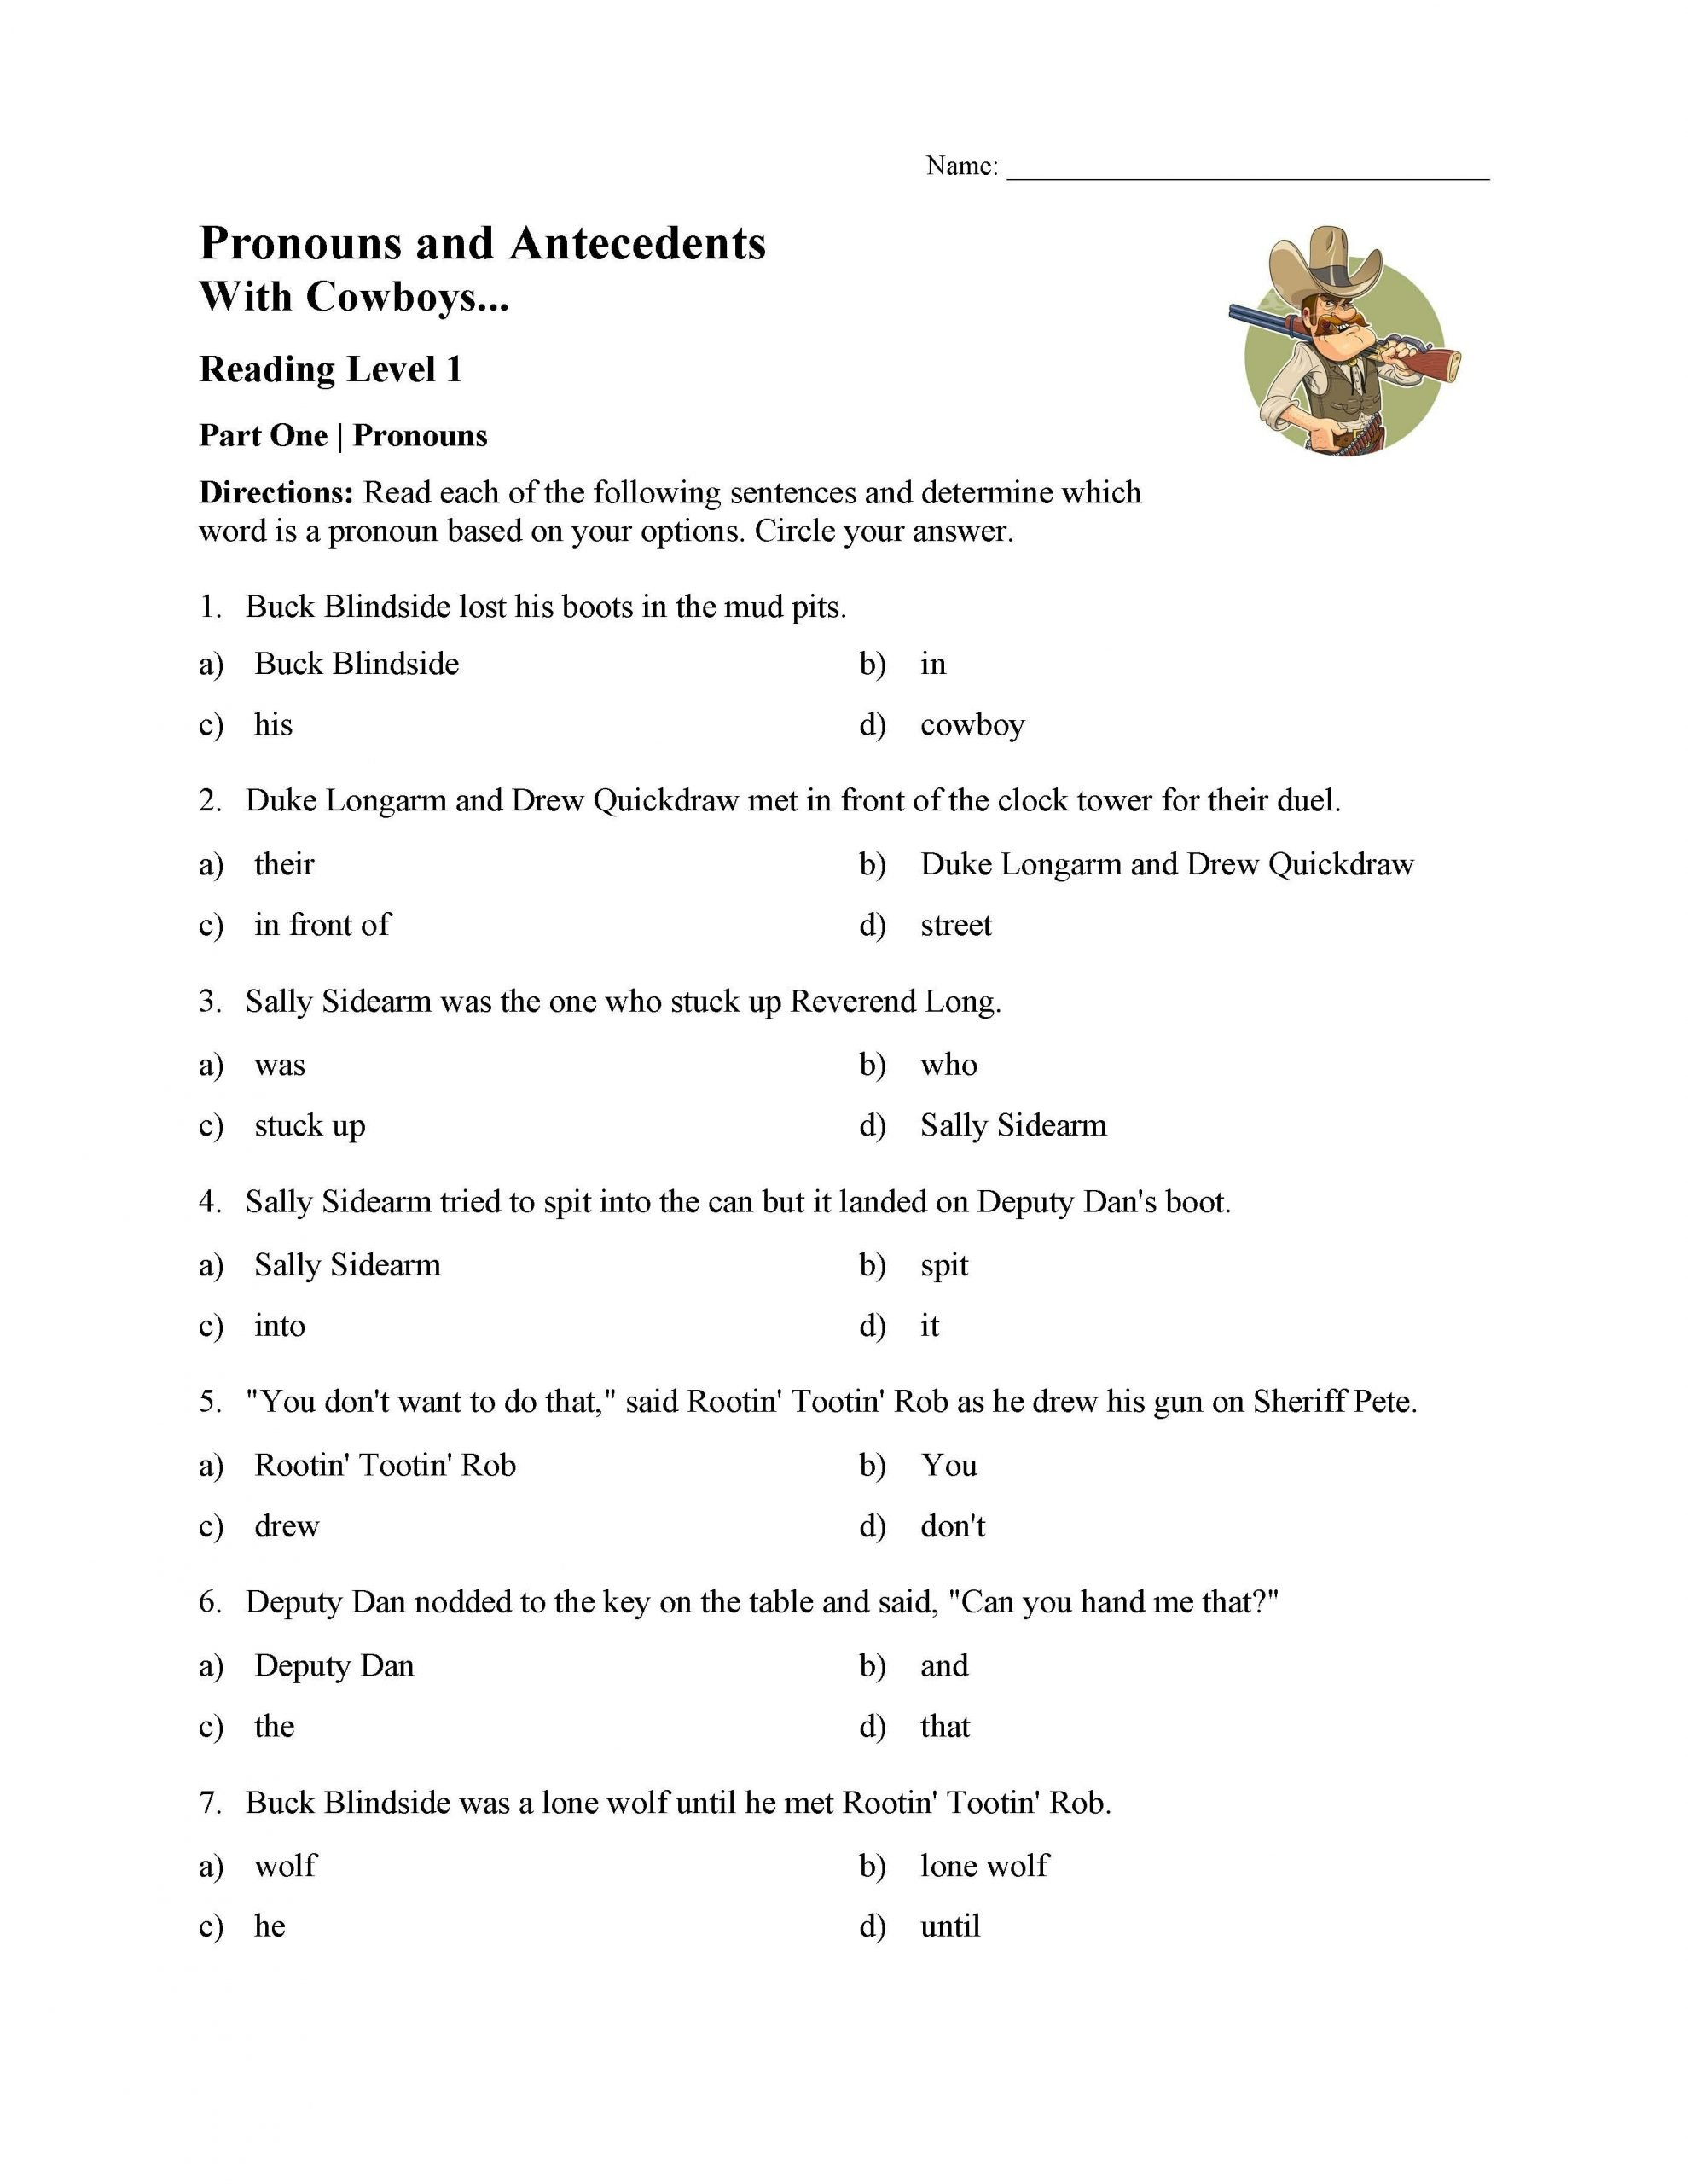 pronouns and antecedents worksheet reading level 01 01